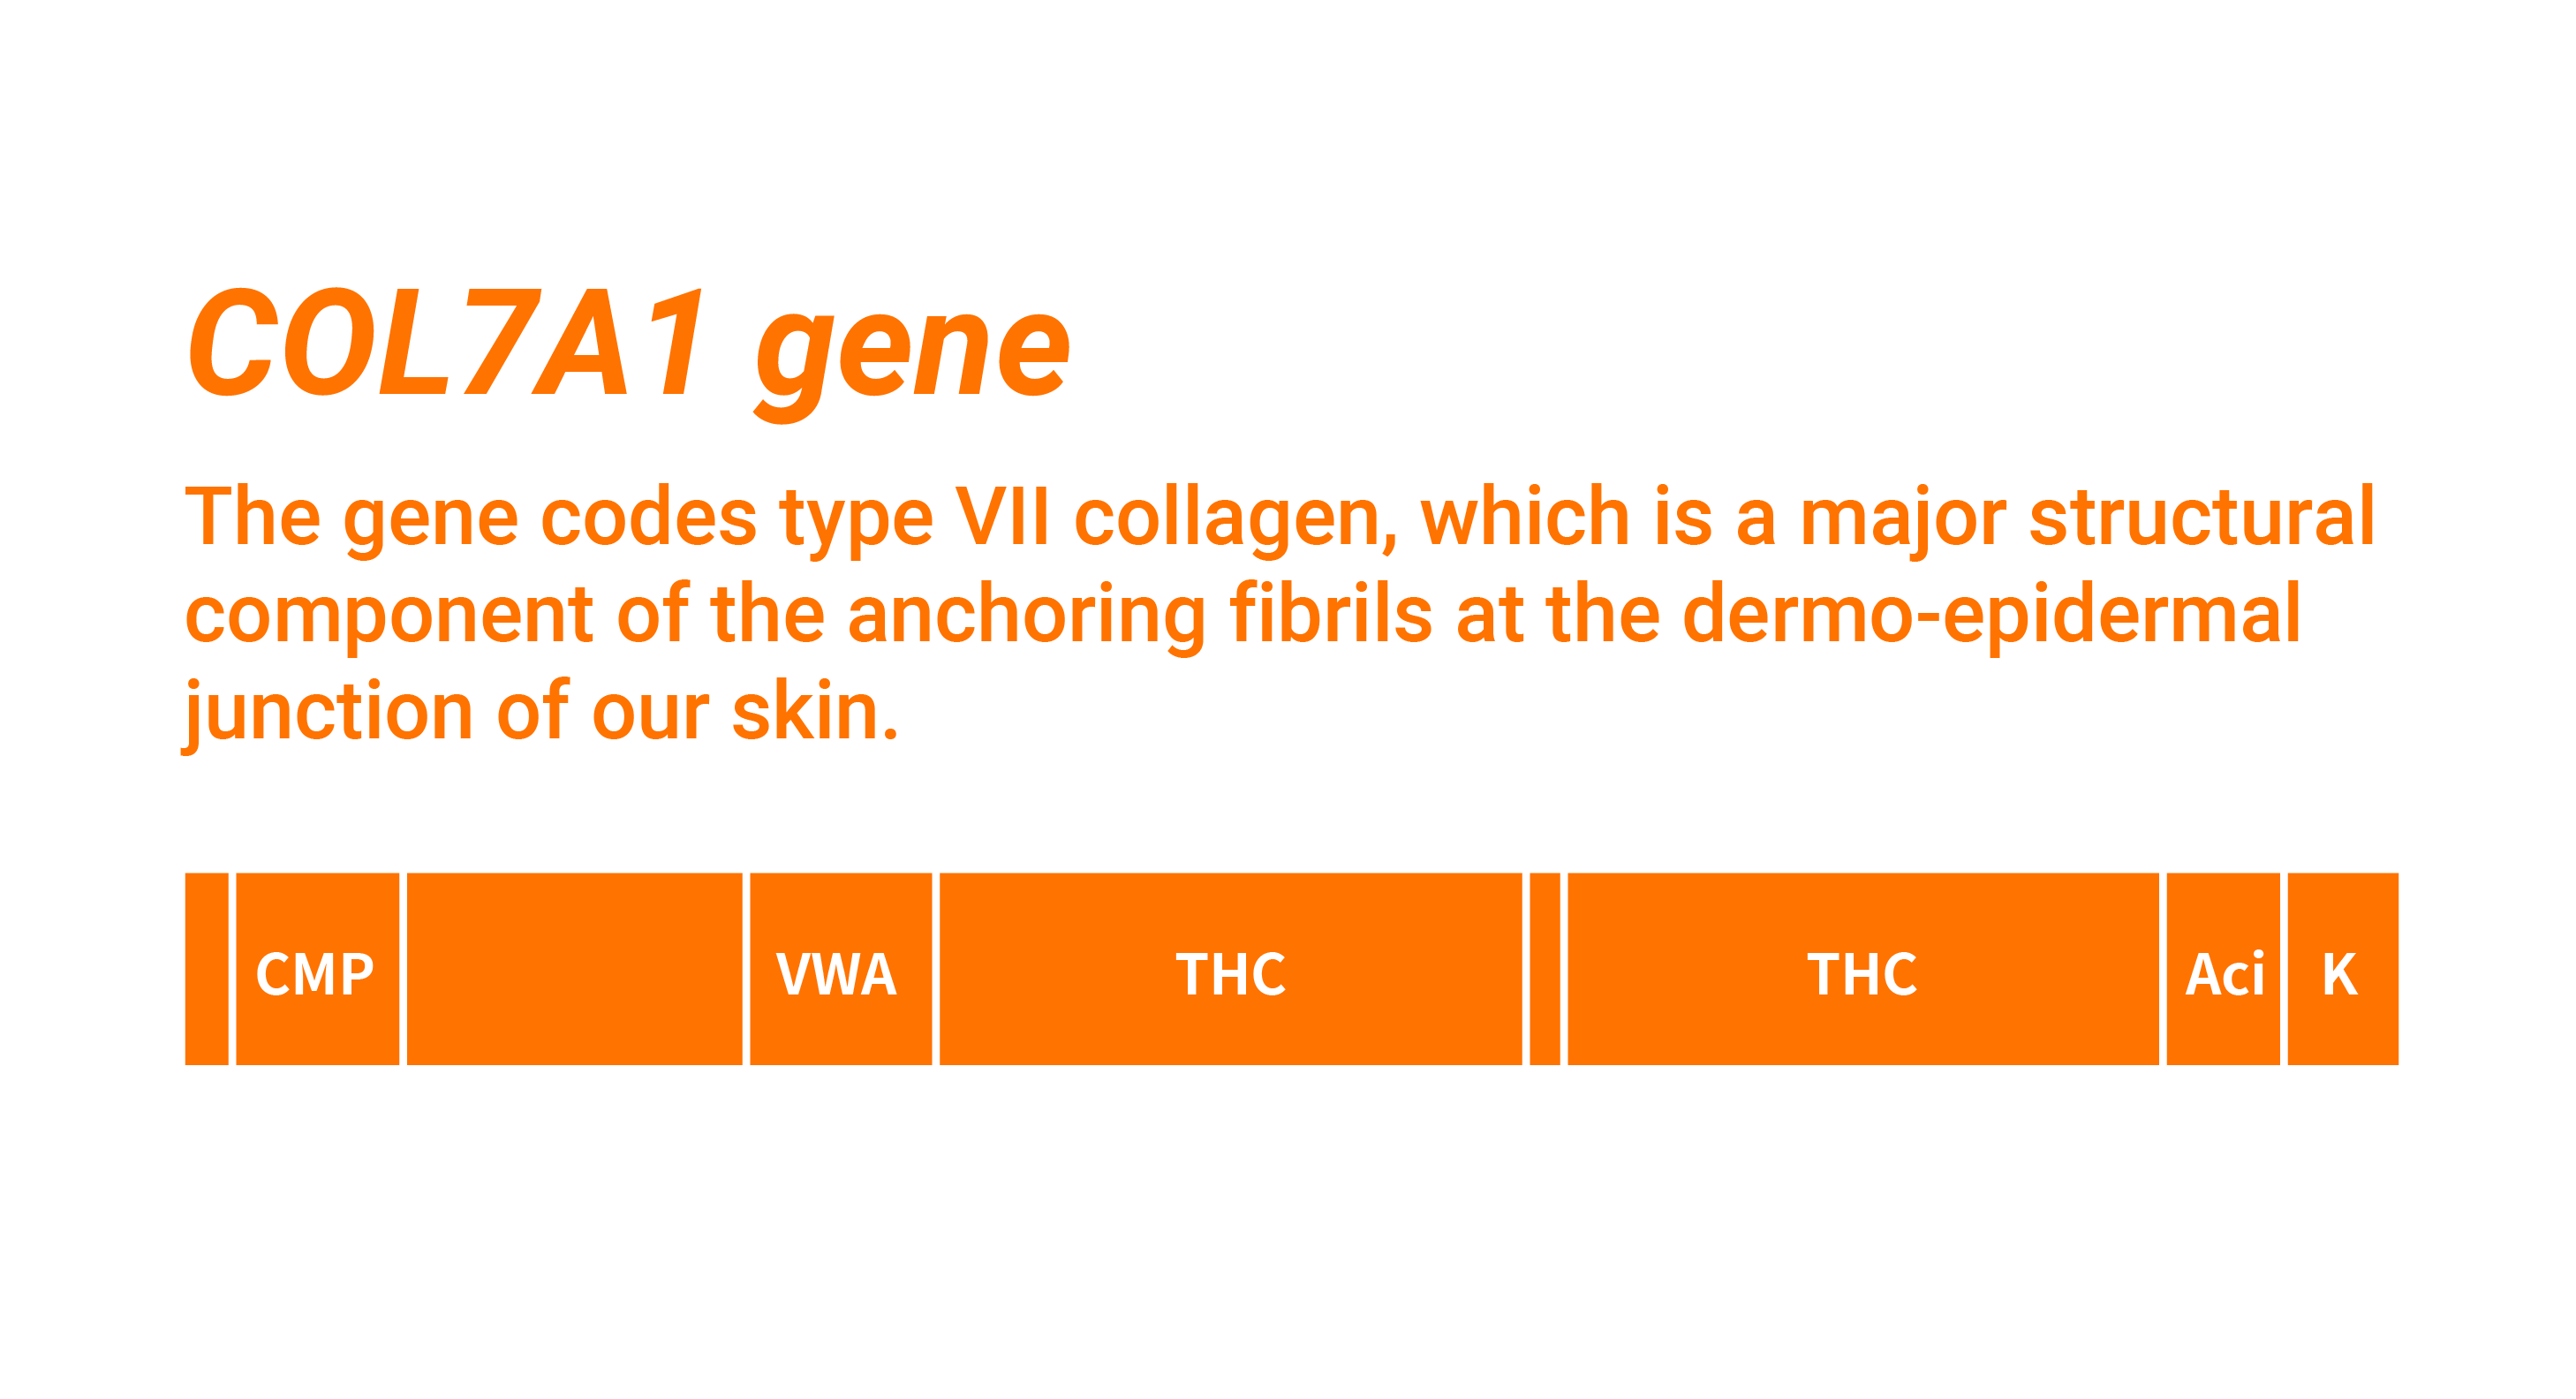 The COL7A1 gene is divided into various sections. The gene codes for type VII collagen, which is a major structural component of the anchoring fibrils at the dermo-epidermal junction of our skin